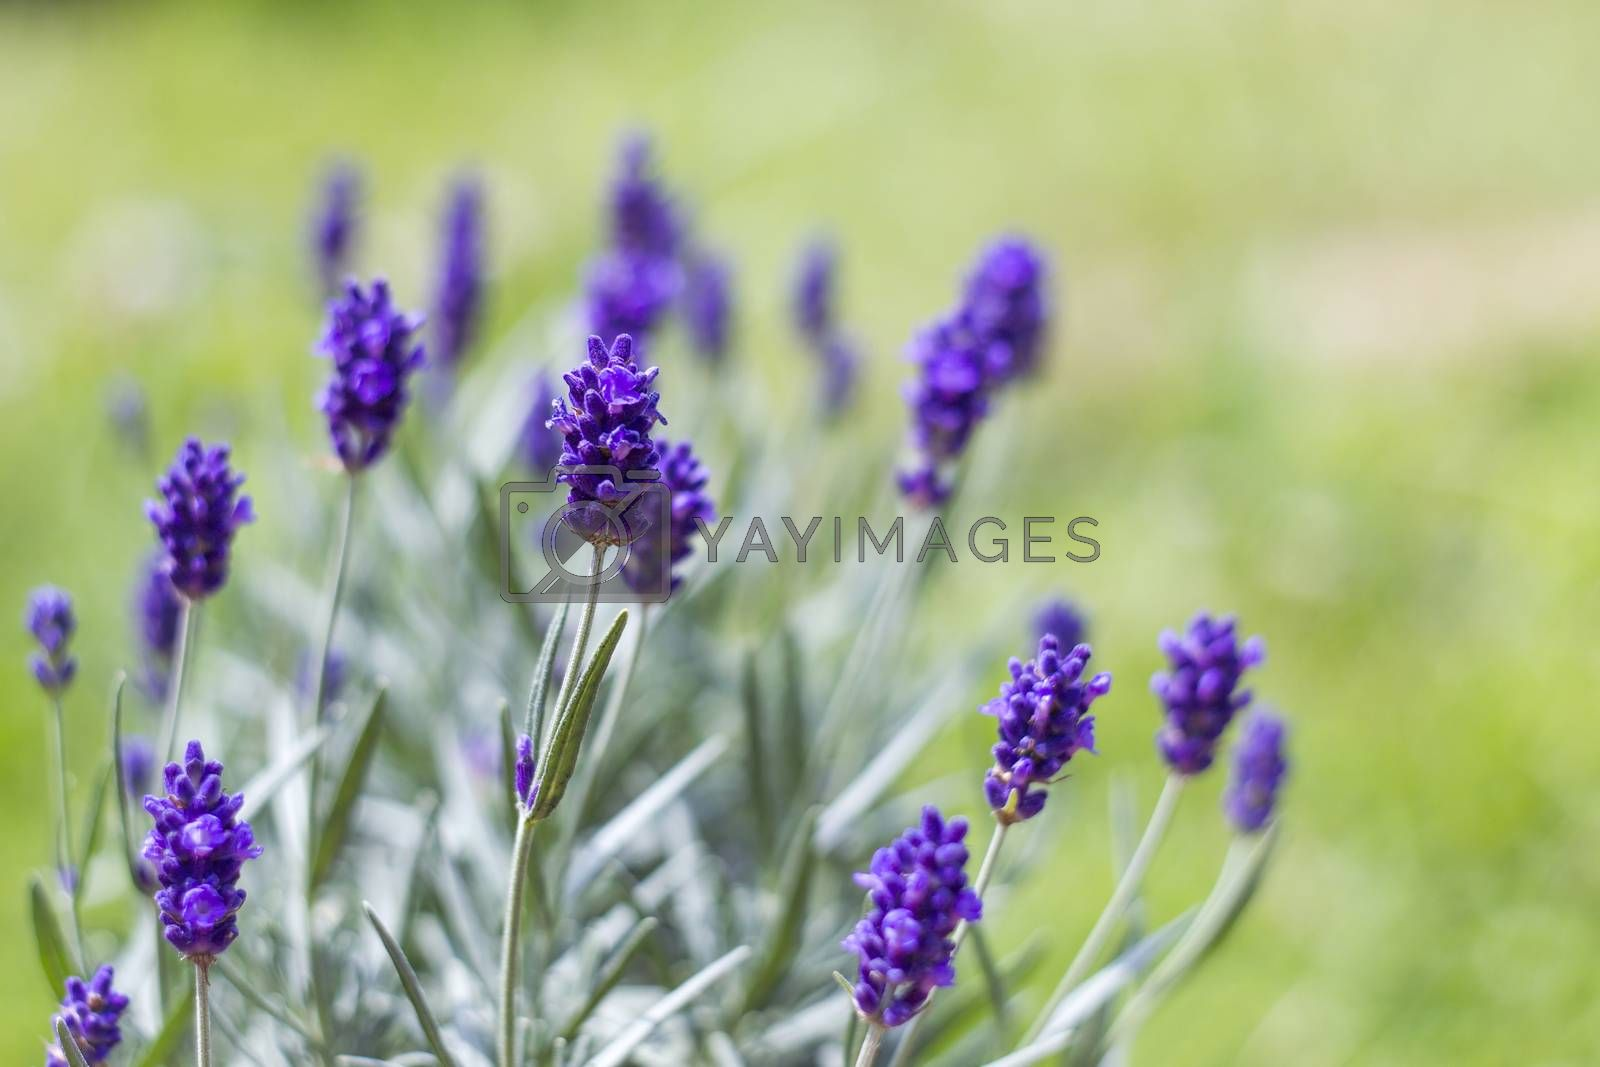 Royalty free image of lavender flowers by miradrozdowski